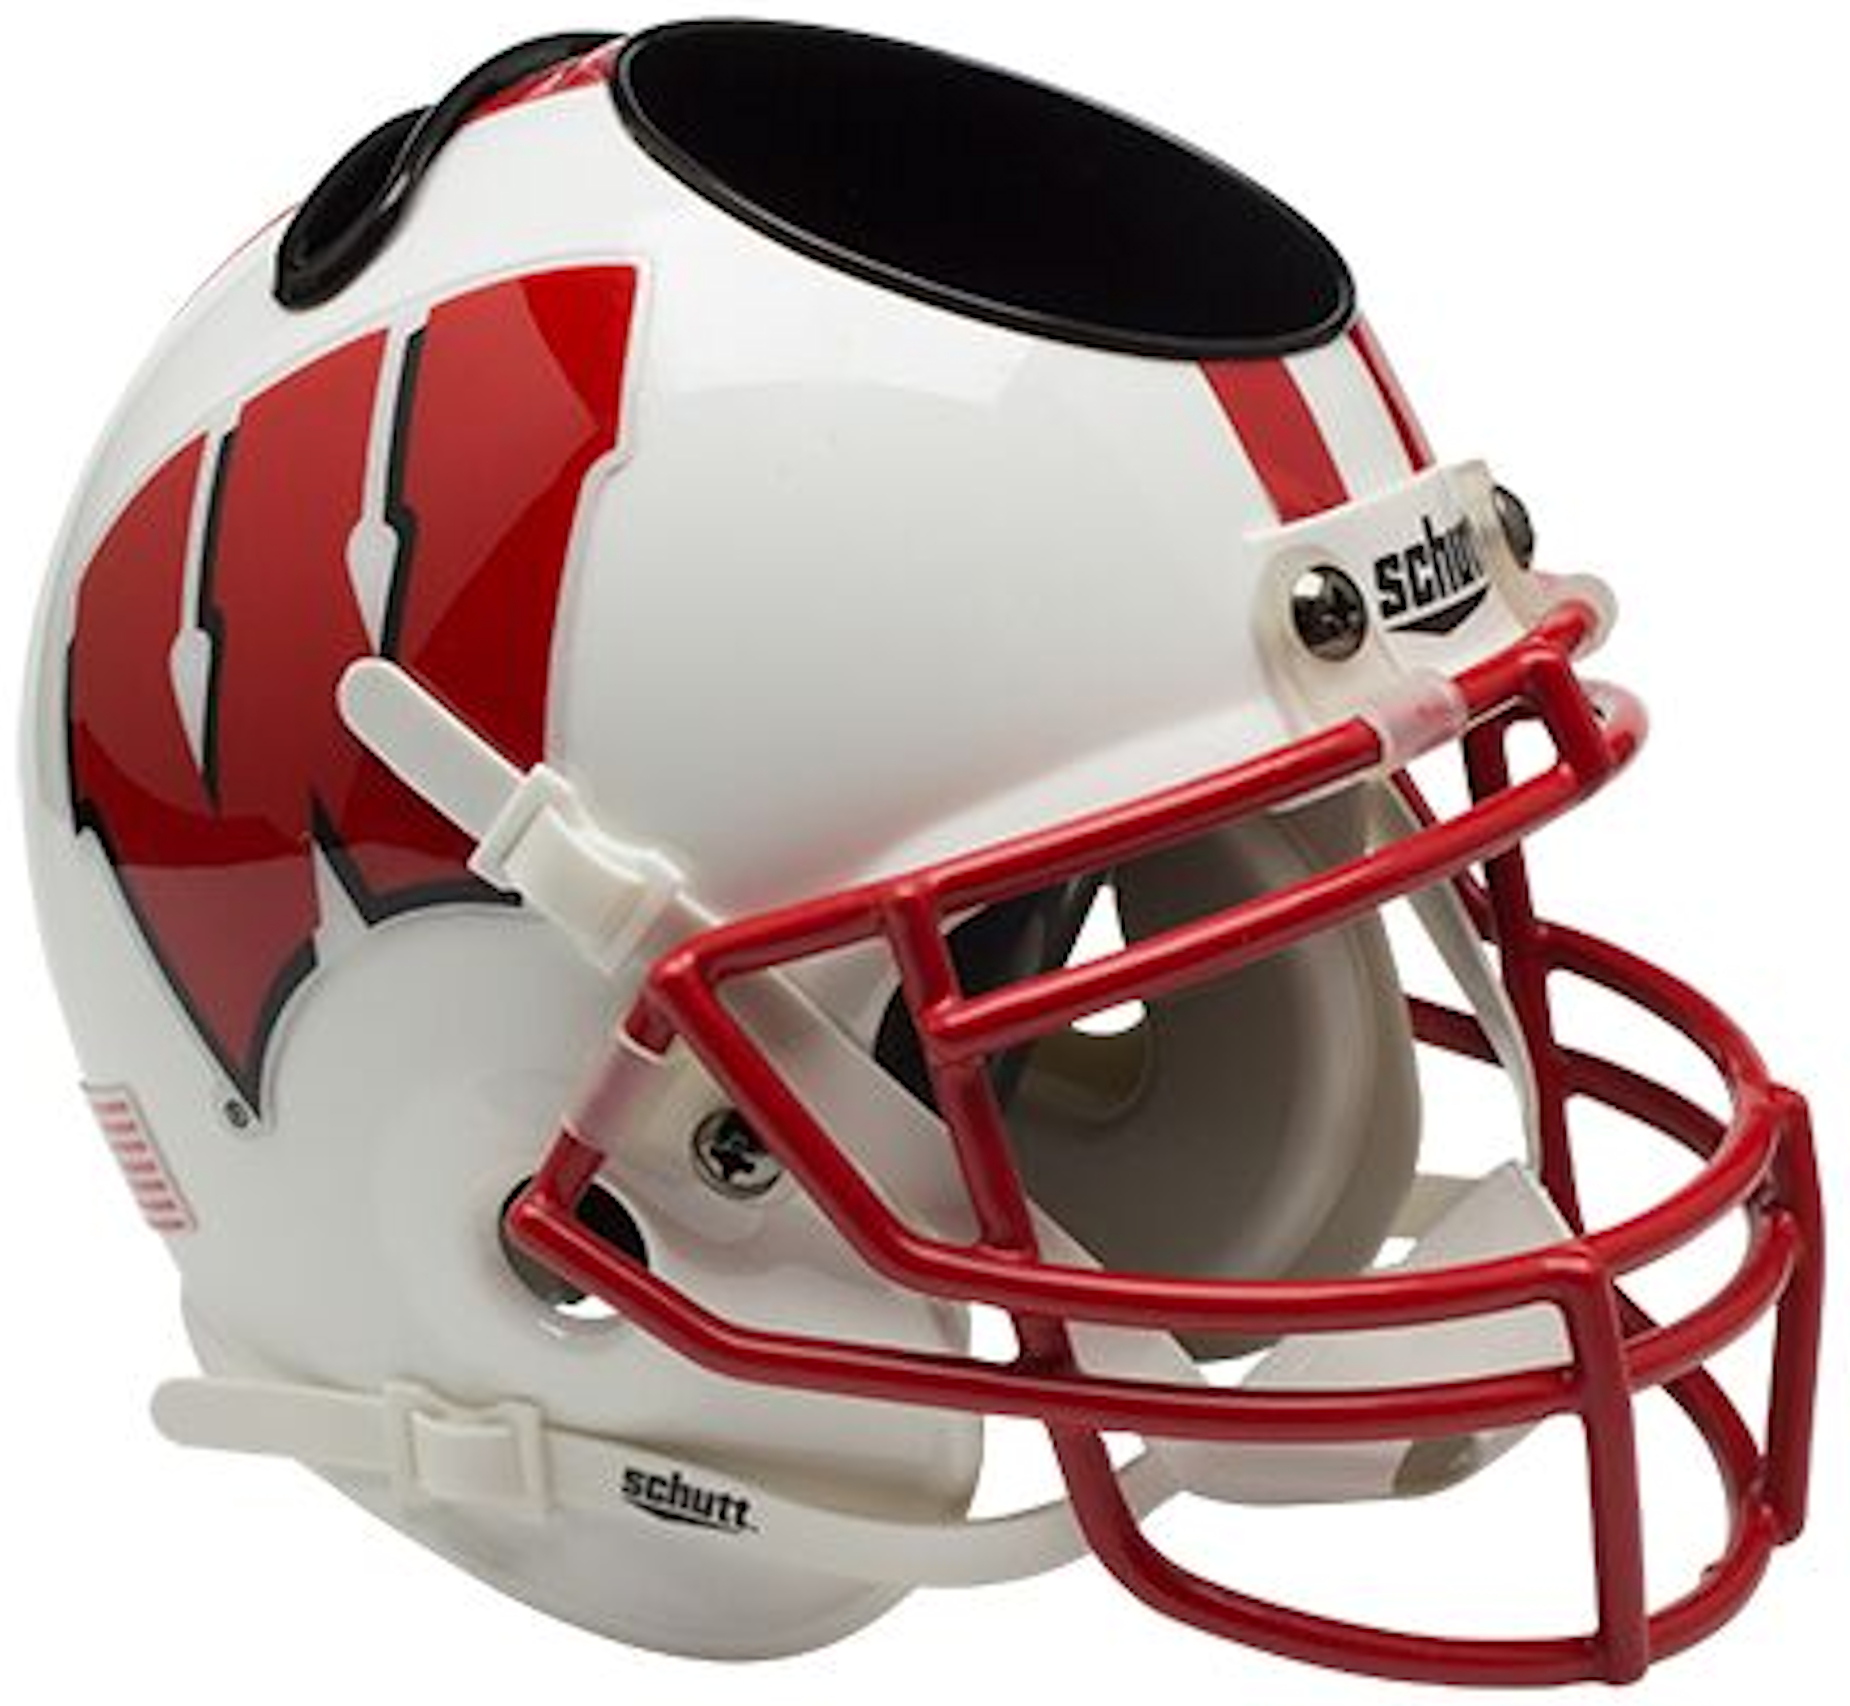 Wisconsin Badgers Miniature Football Helmet Desk Caddy